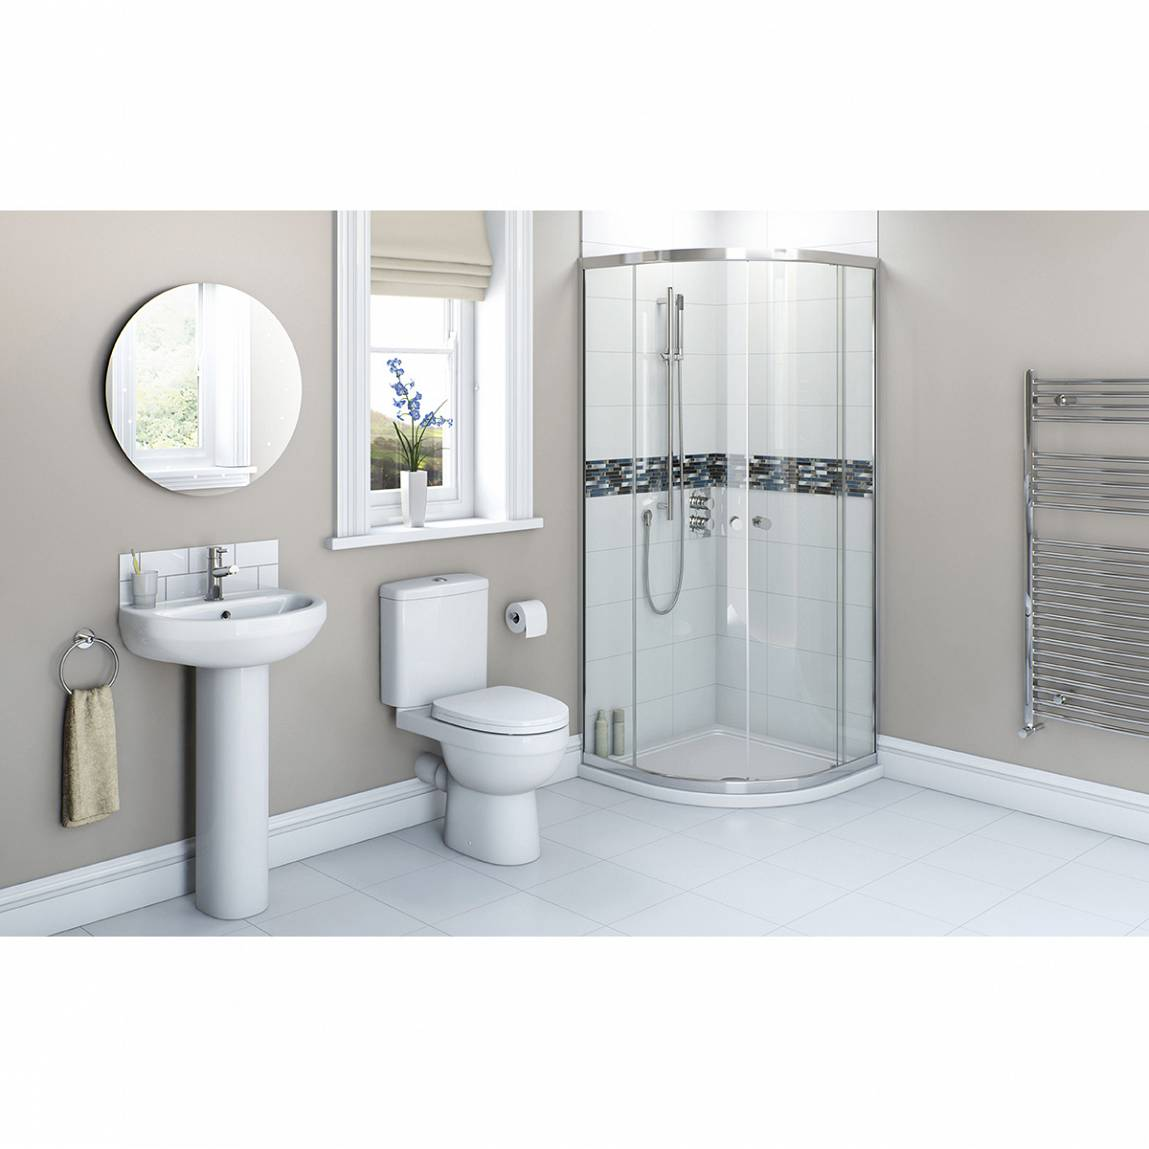 Image of Energy Bathroom set with Quadrant Enclosure & Tray 900